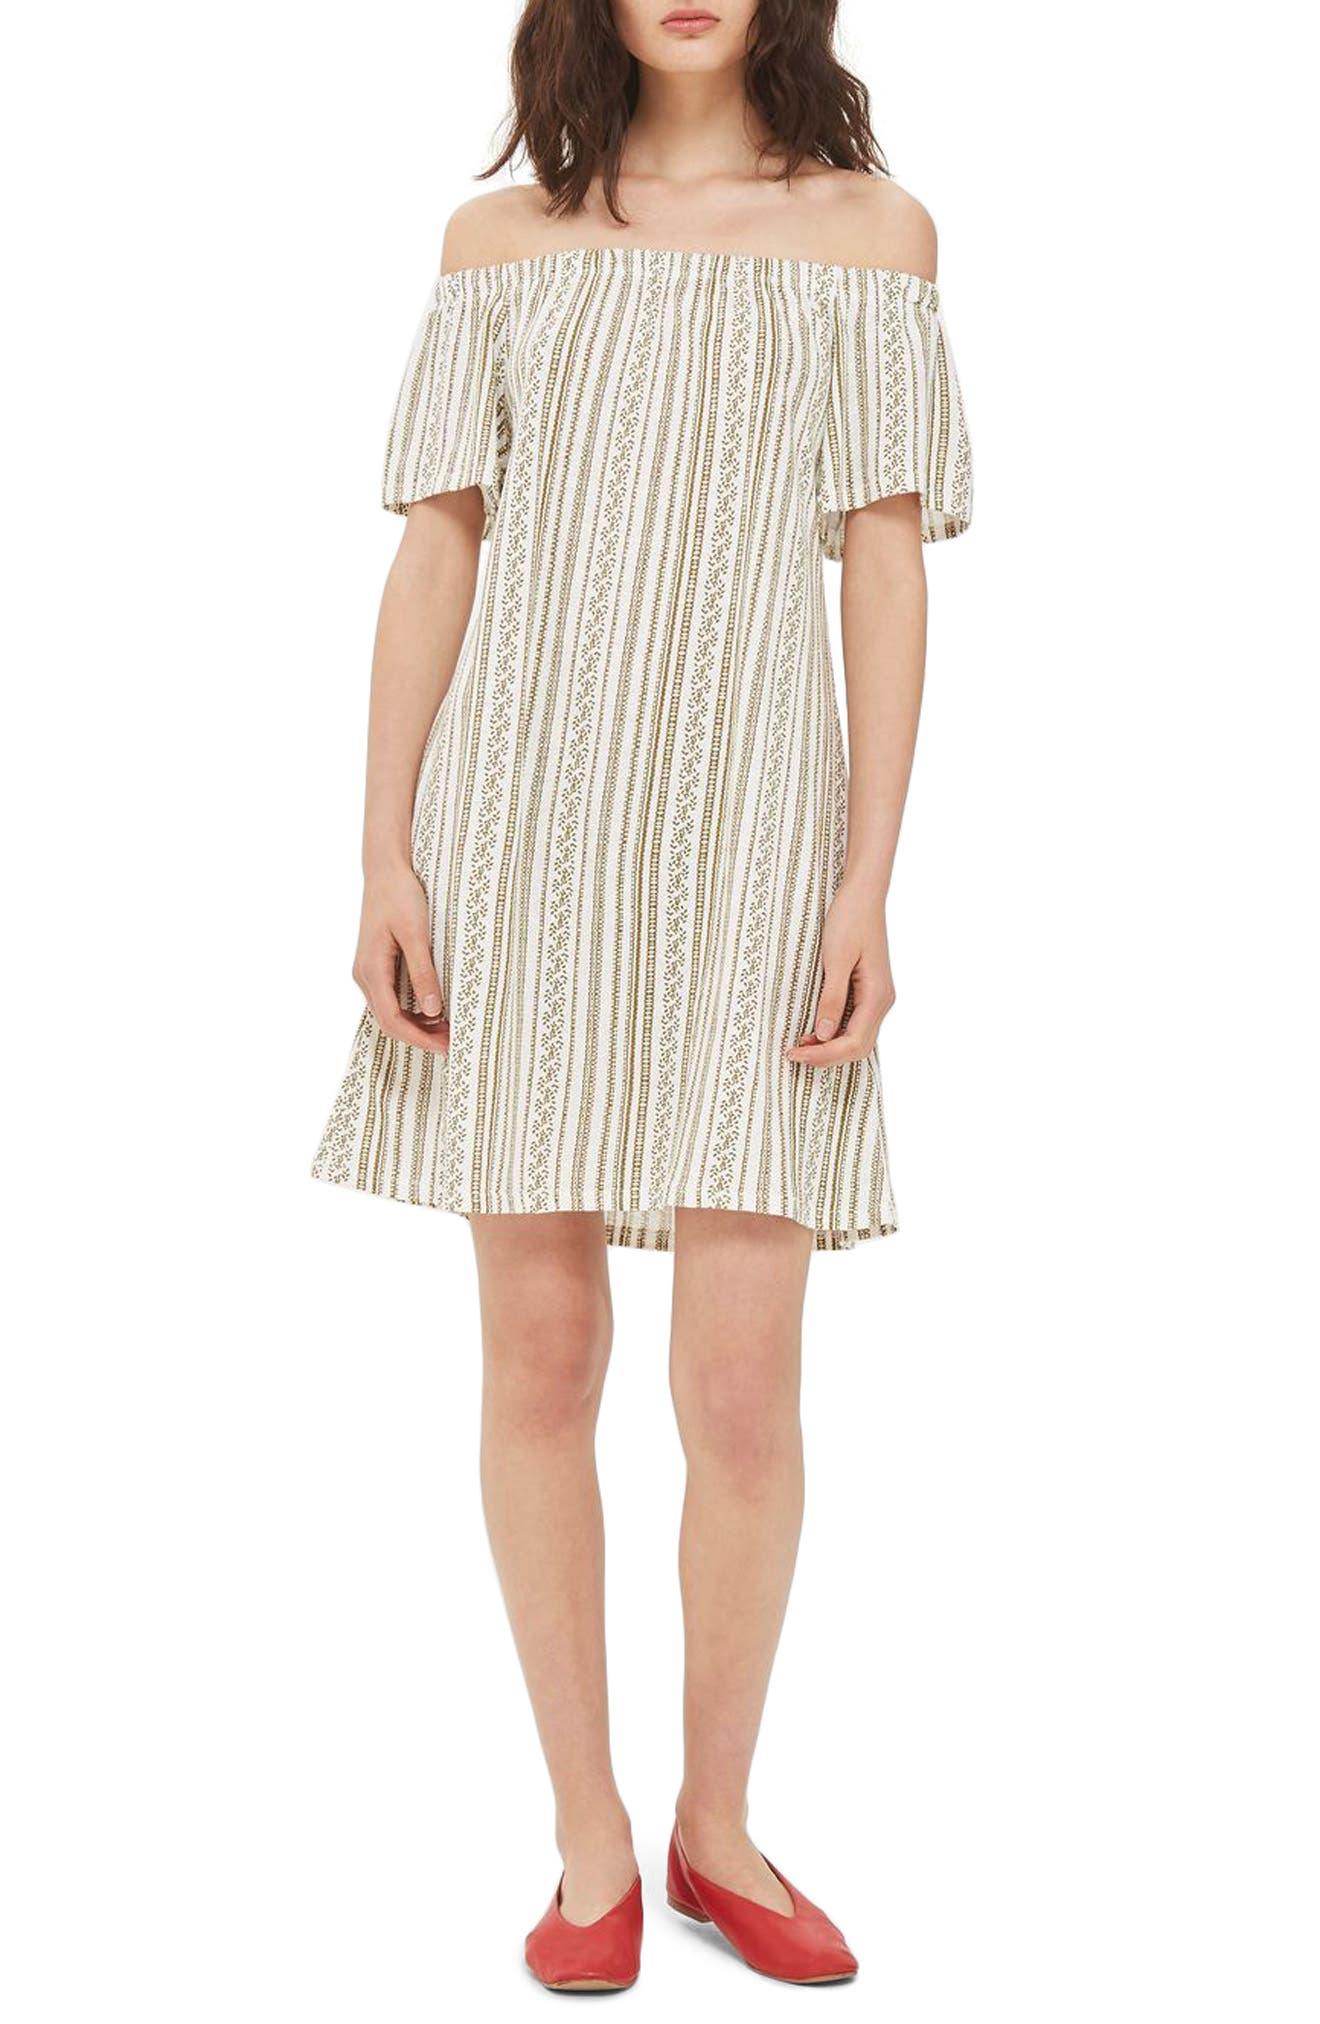 Topshop Stripe Off the Shoulder Minidress